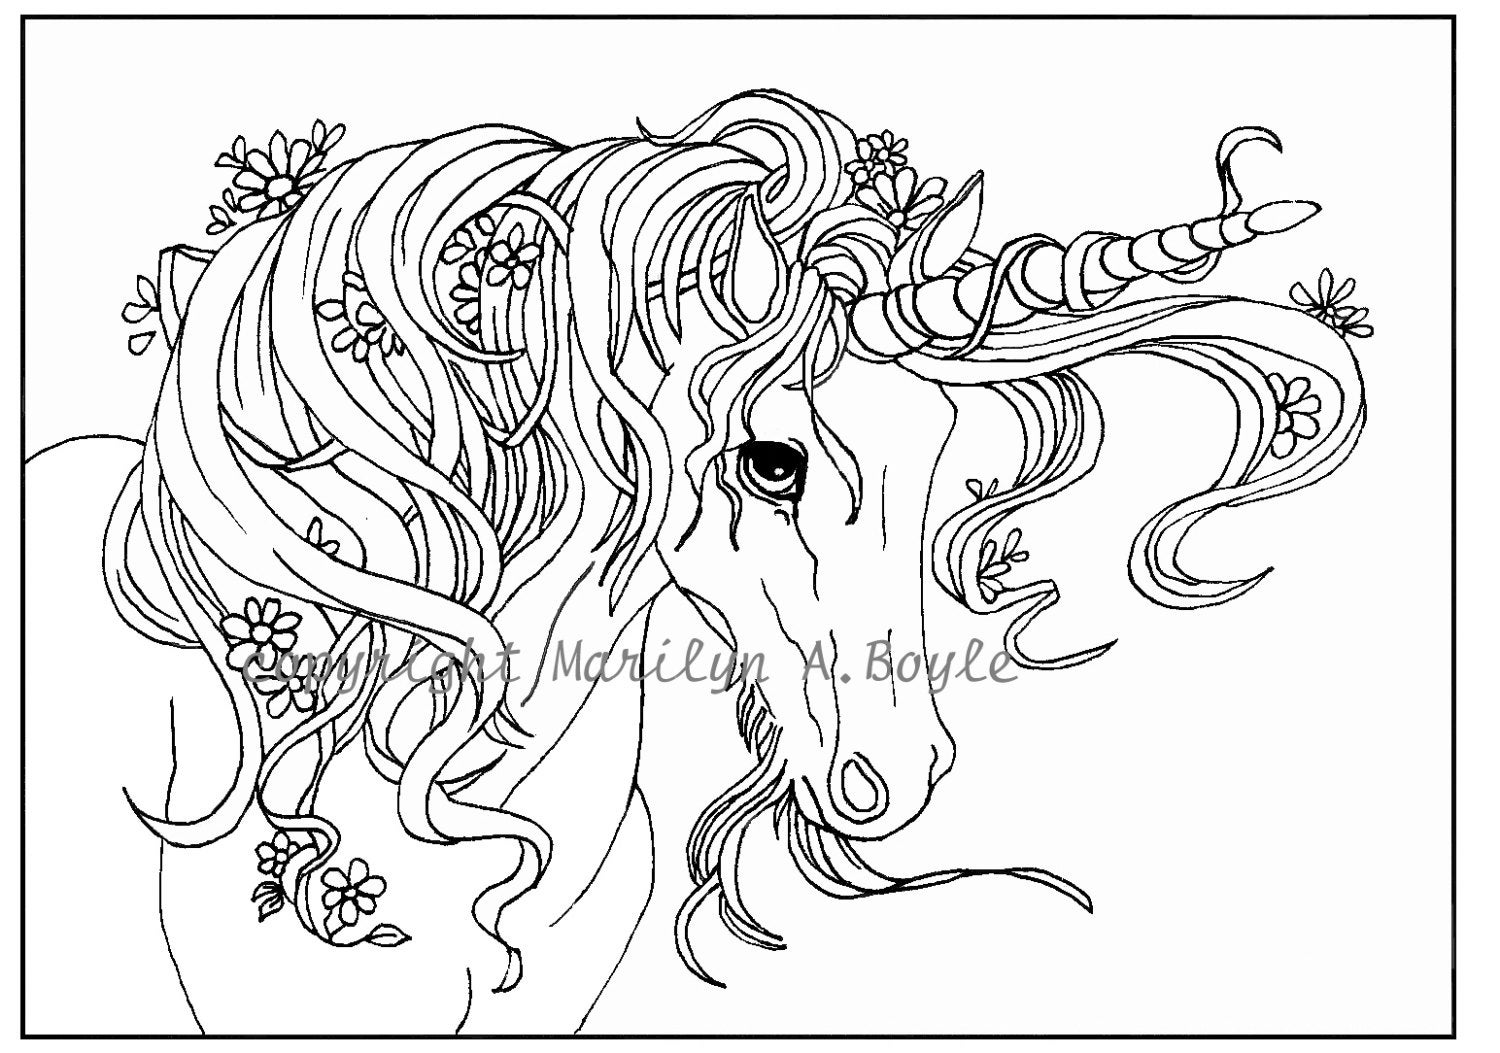 Clean image with regard to free printable unicorn coloring pages